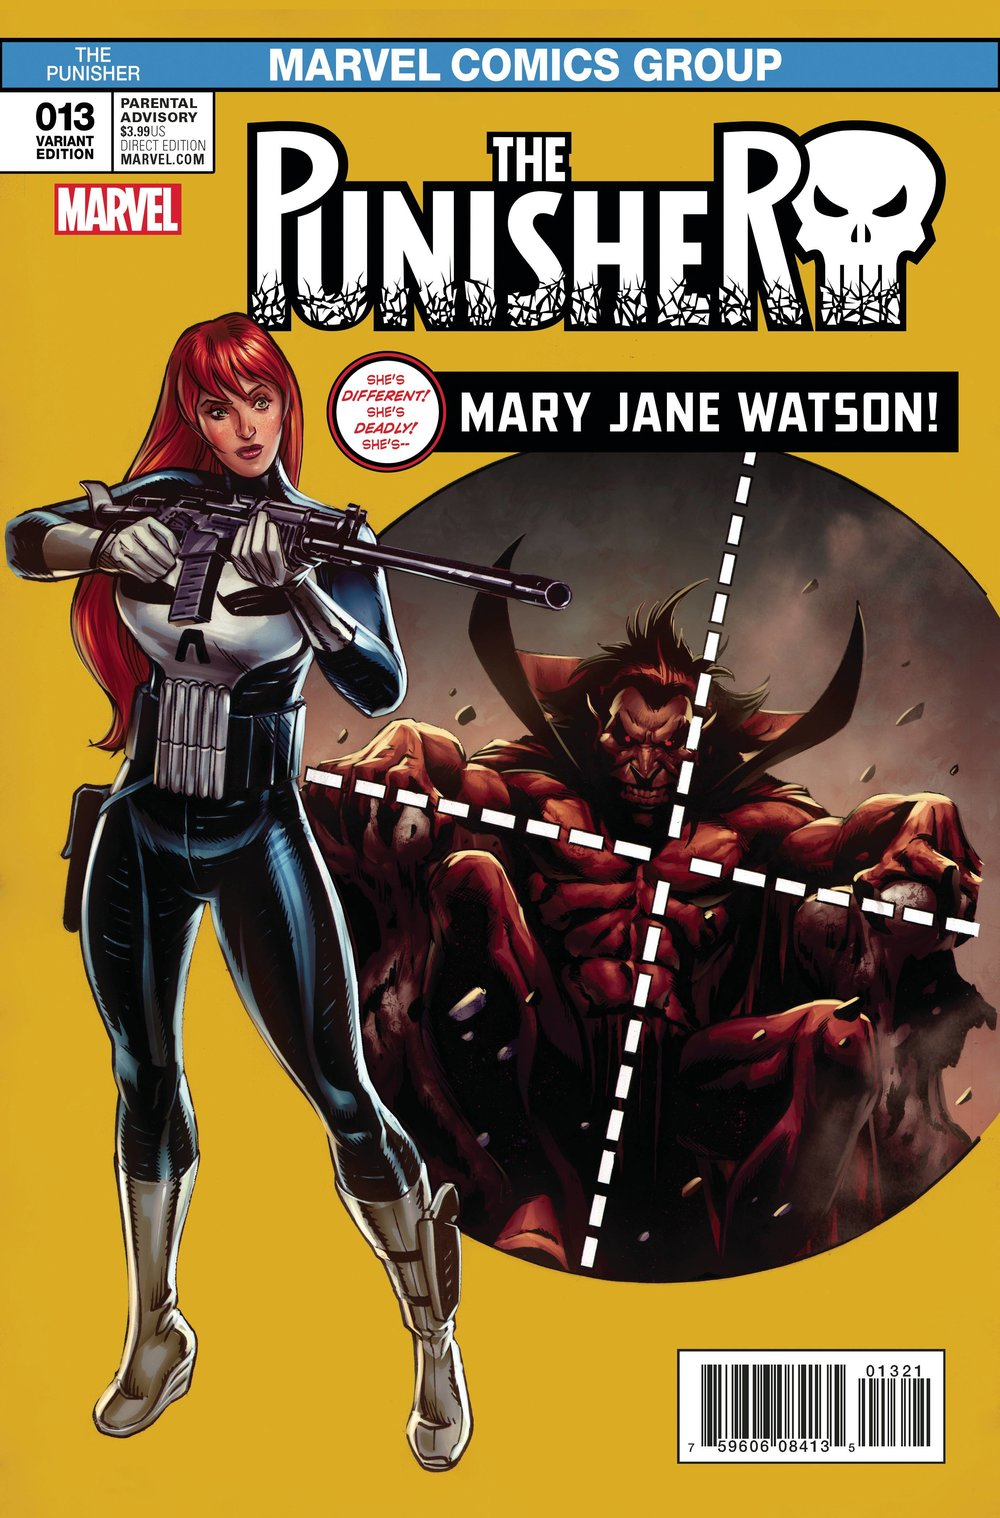 PUNISHER 13 WILLIAMS MARY JANE VAR.jpg